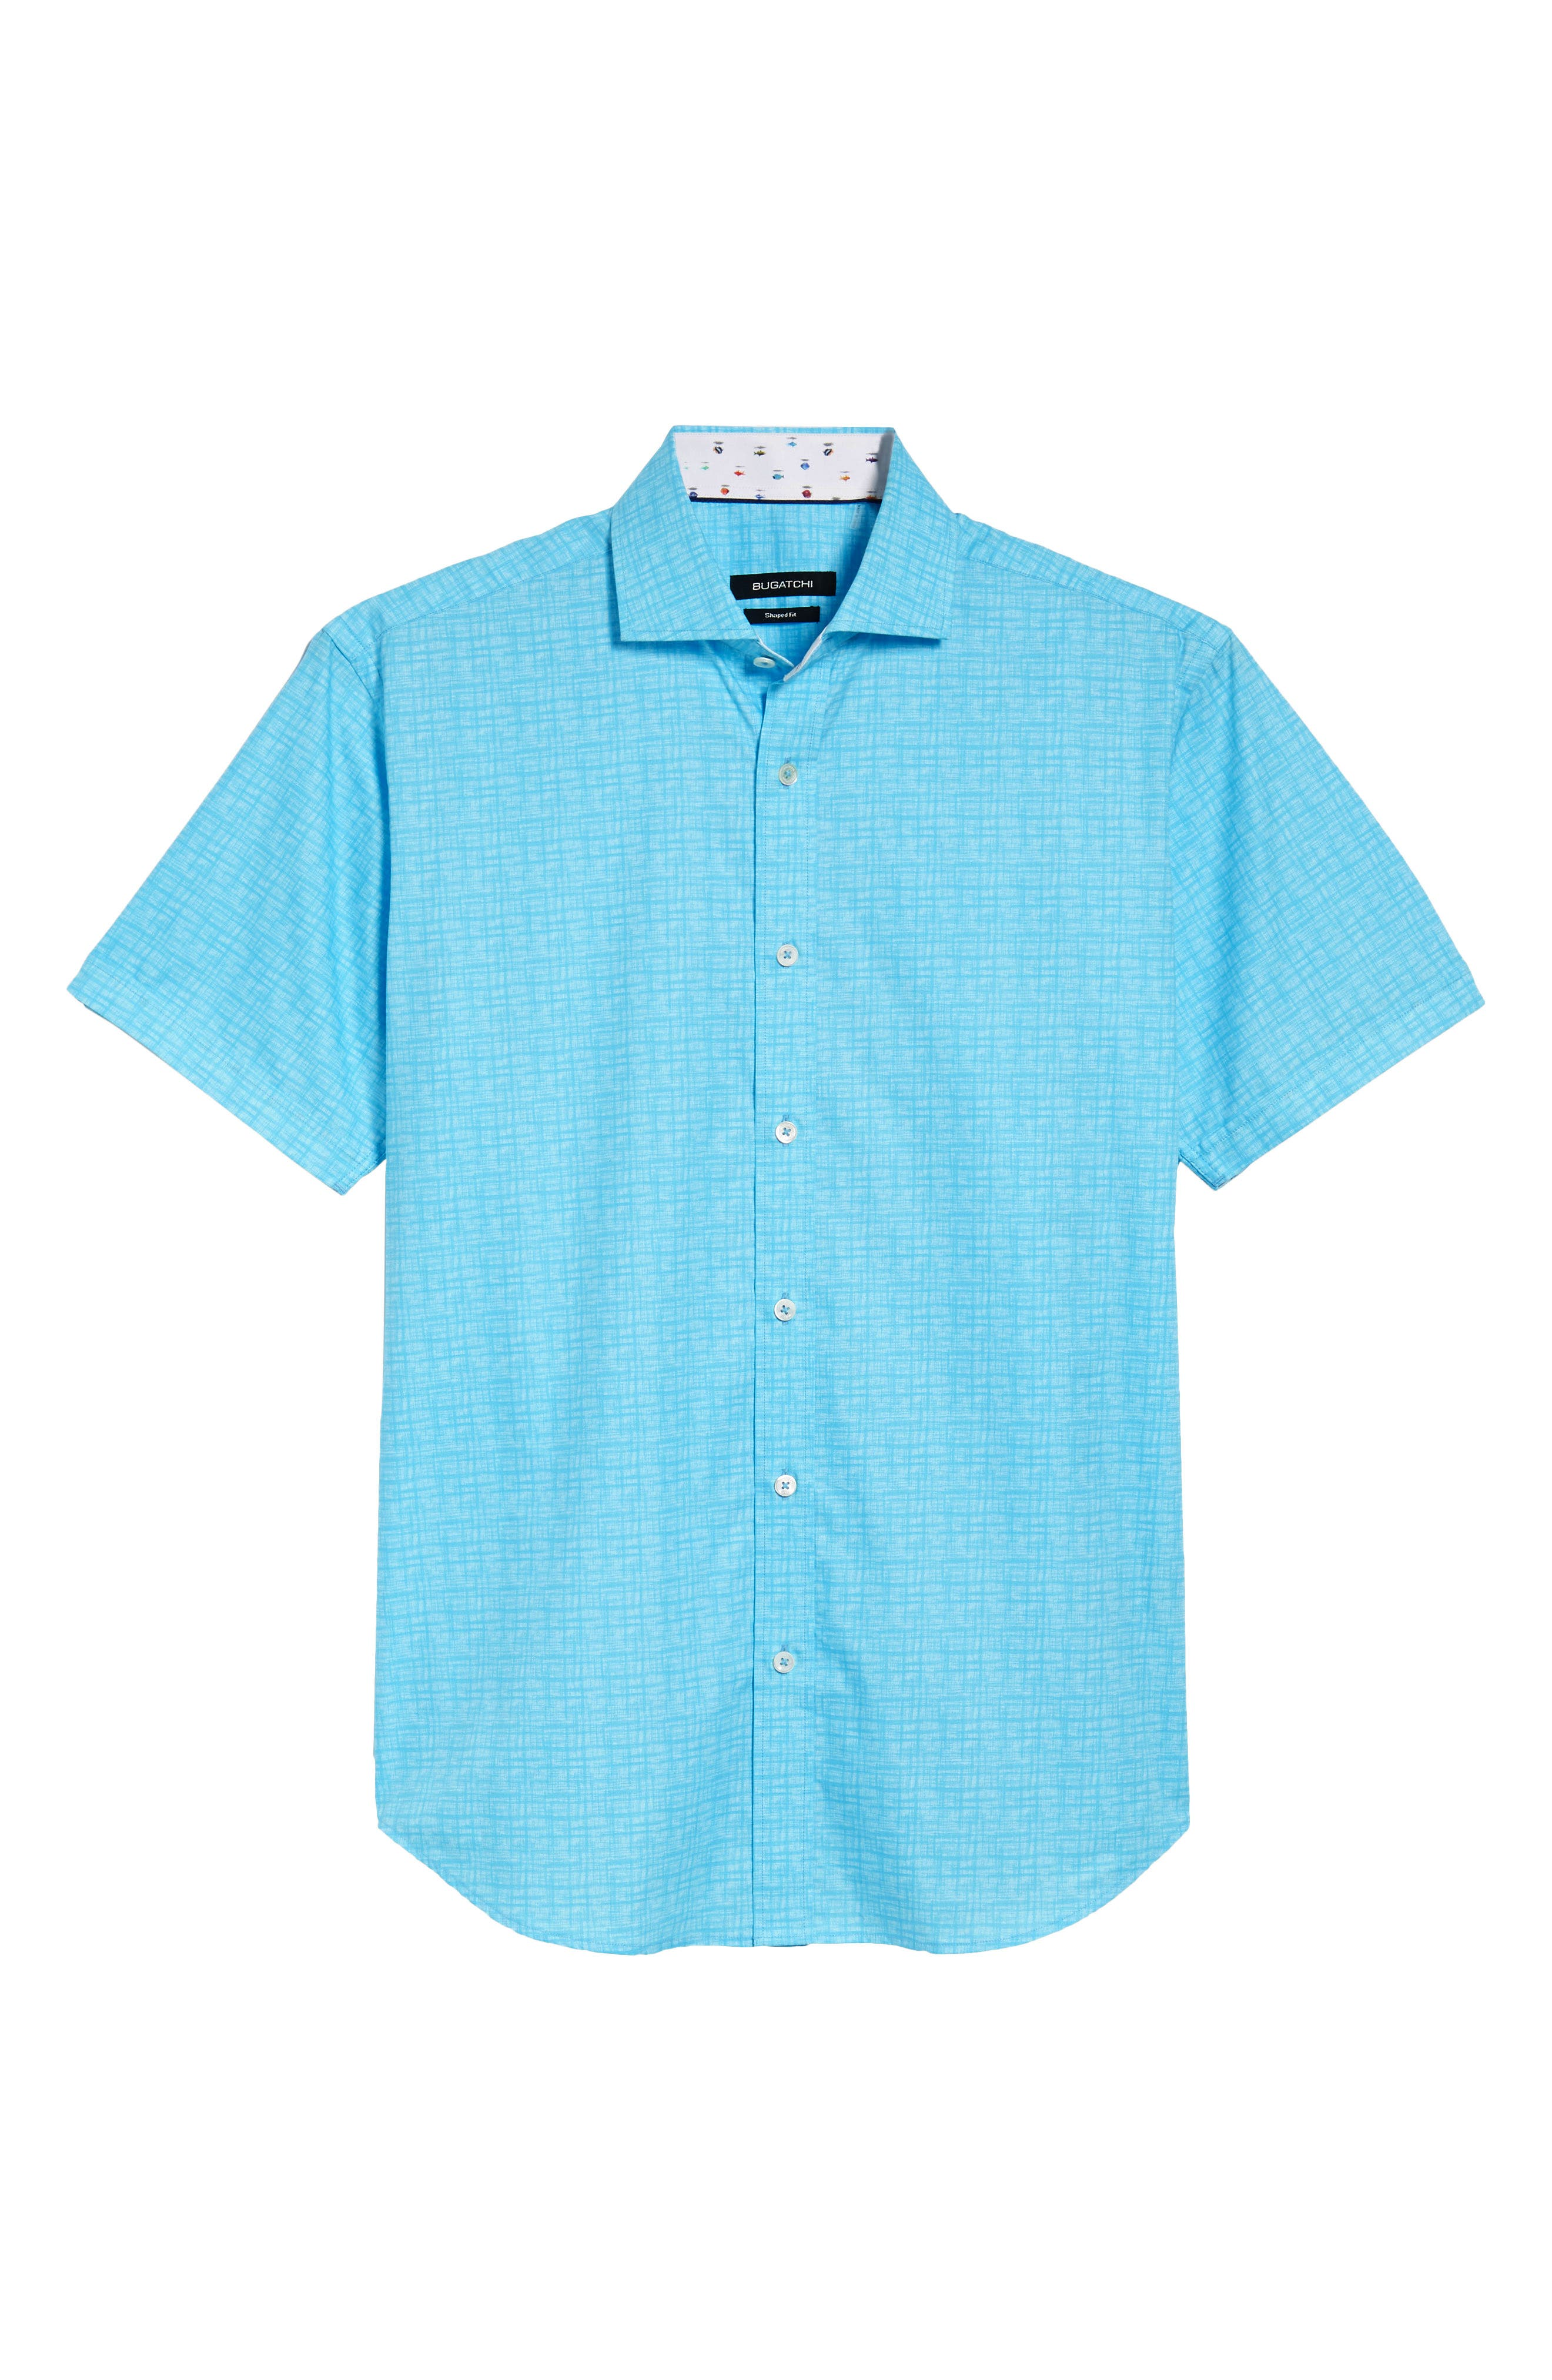 Freehand Shaped Fit Sport Shirt,                             Alternate thumbnail 6, color,                             Aqua